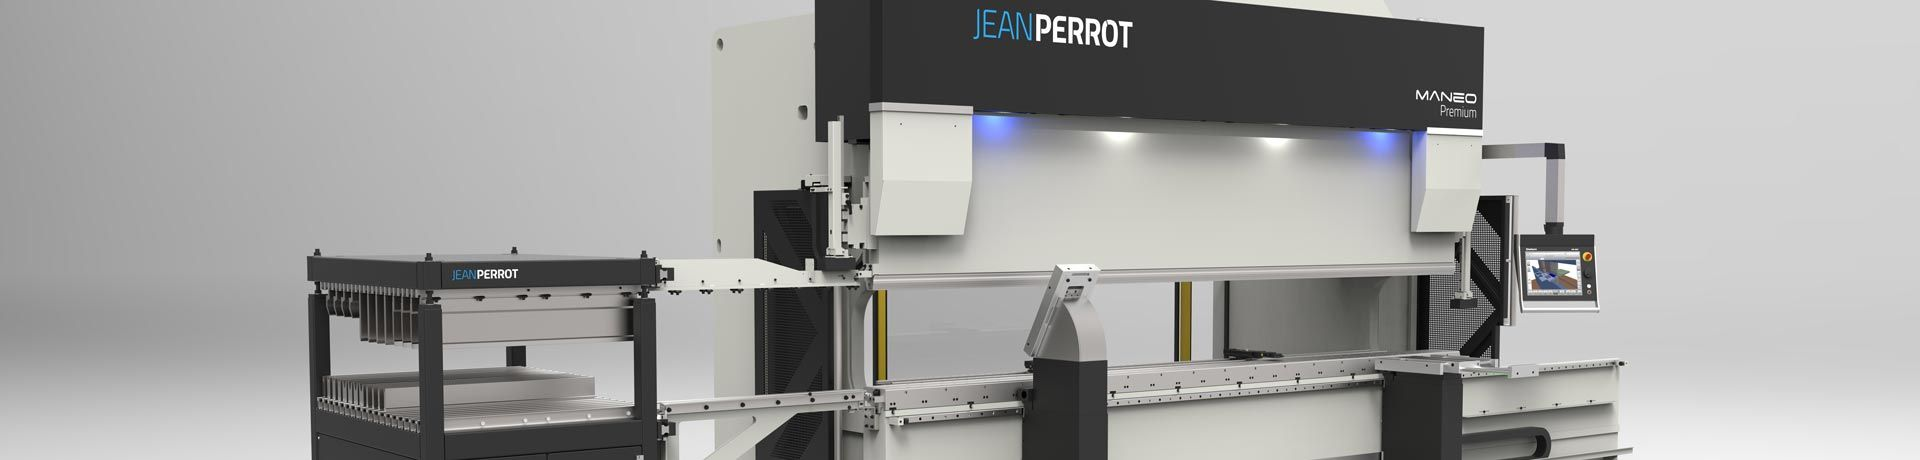 JEAN PERROT, a brand of PINETTE P.E.I. industrial engineering group, designs, manufactures and supplies sheet metal processing equipment : press brakes, automated robotic bending cells, shears, tube & profile benders, rolling machines, notching machines, punching machines…